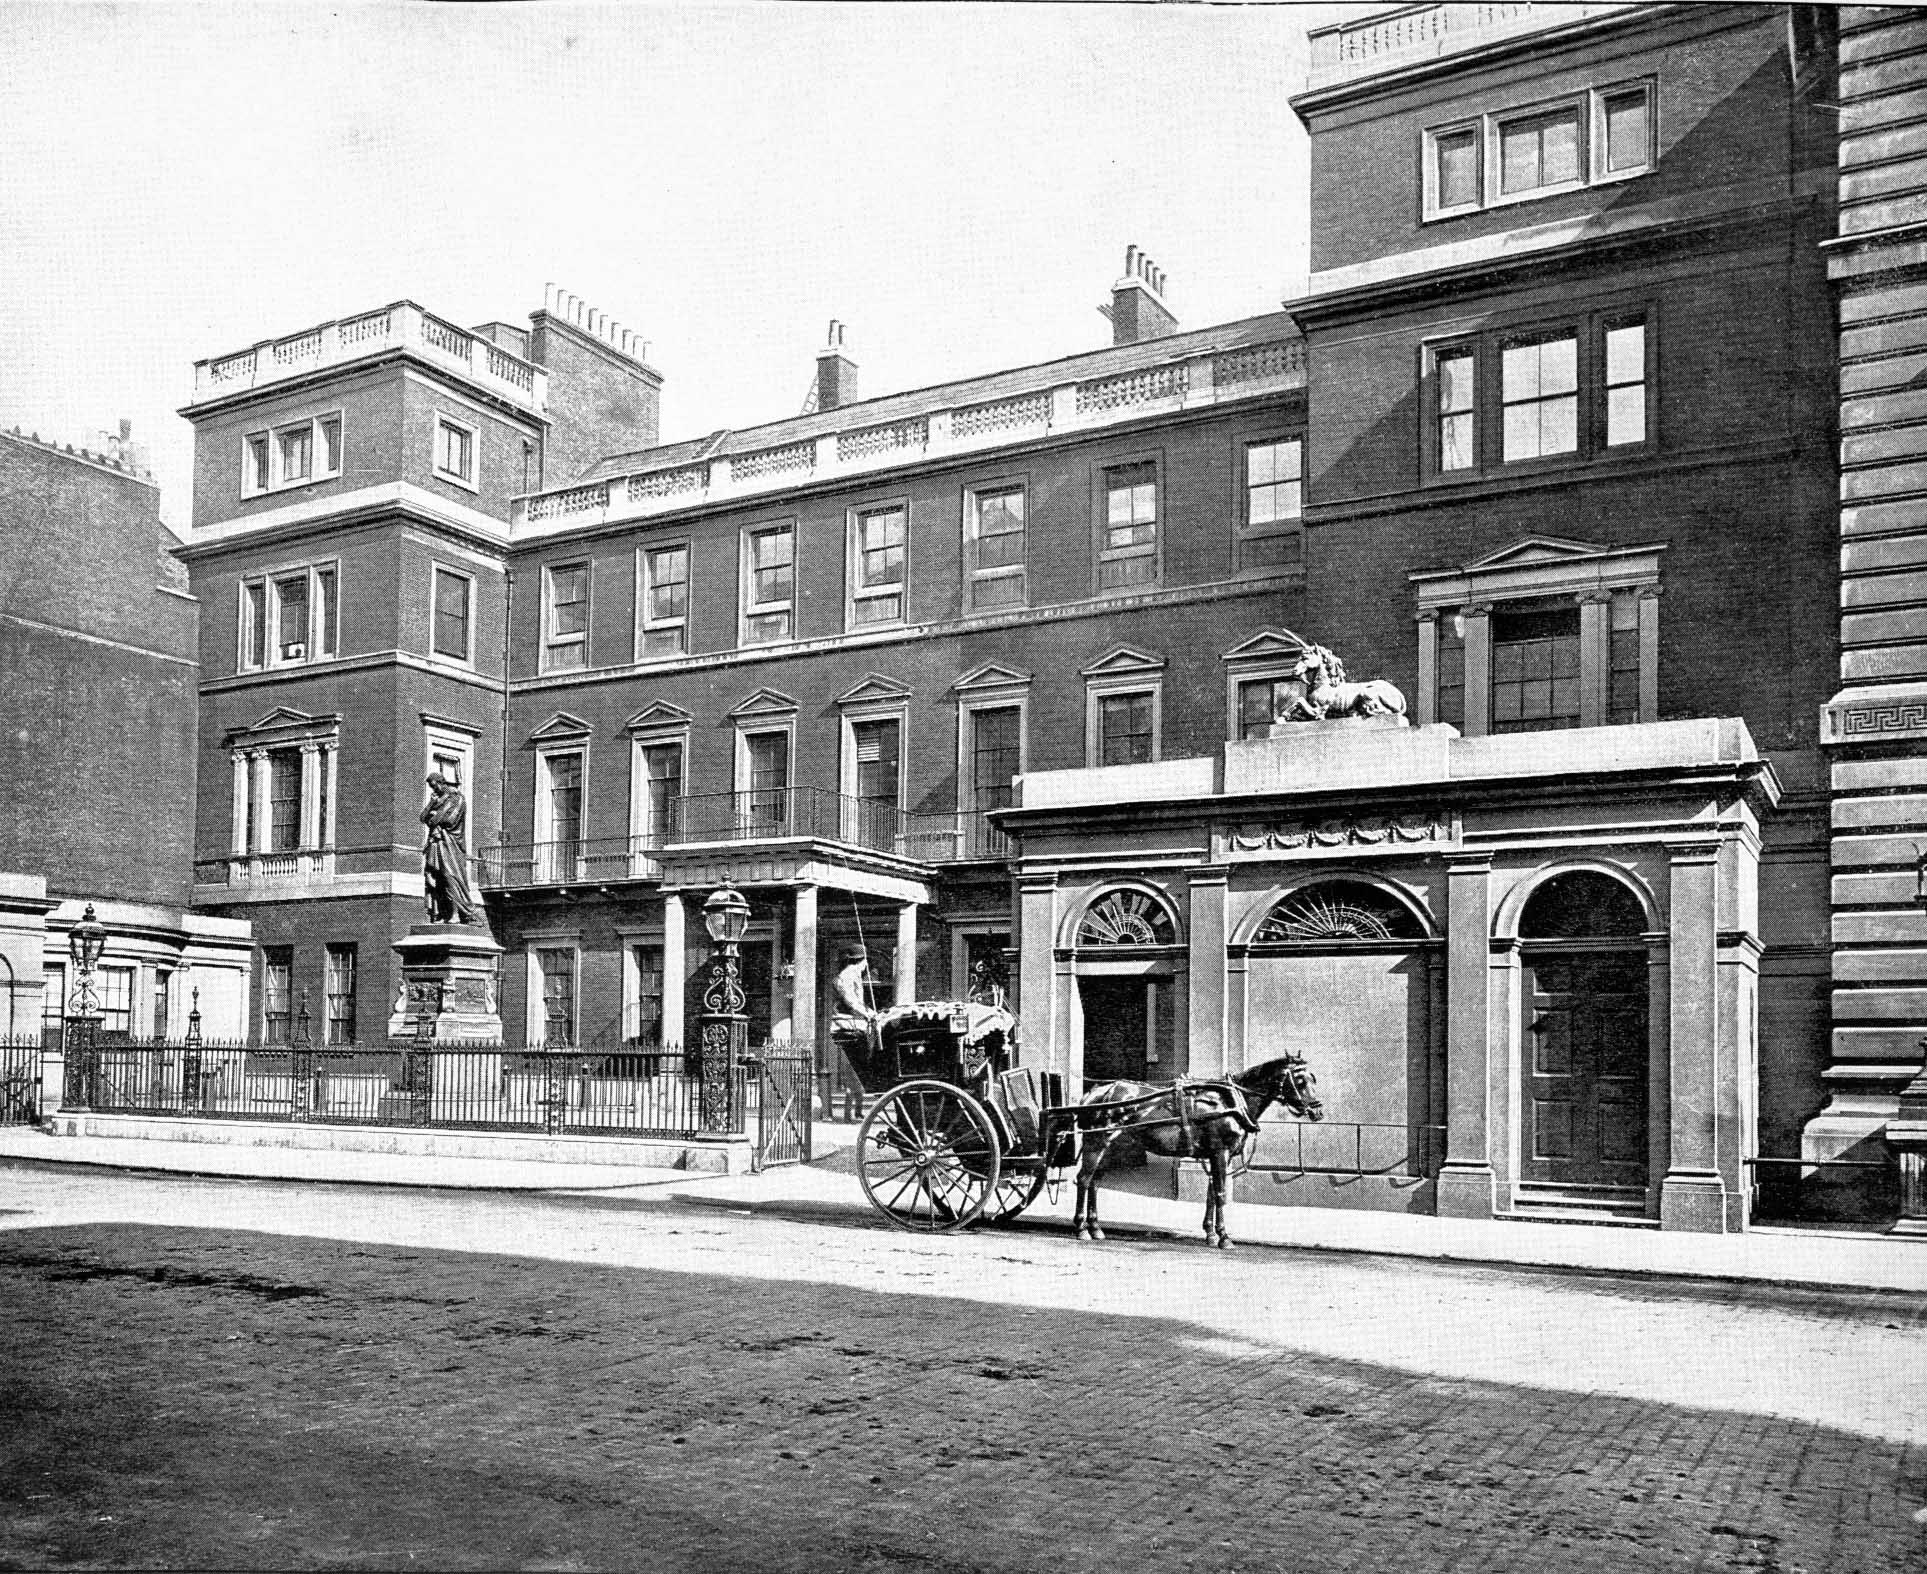 War Office, Pall Mall  circa 1900. Used under  Creative Commons by SA 2.0 .